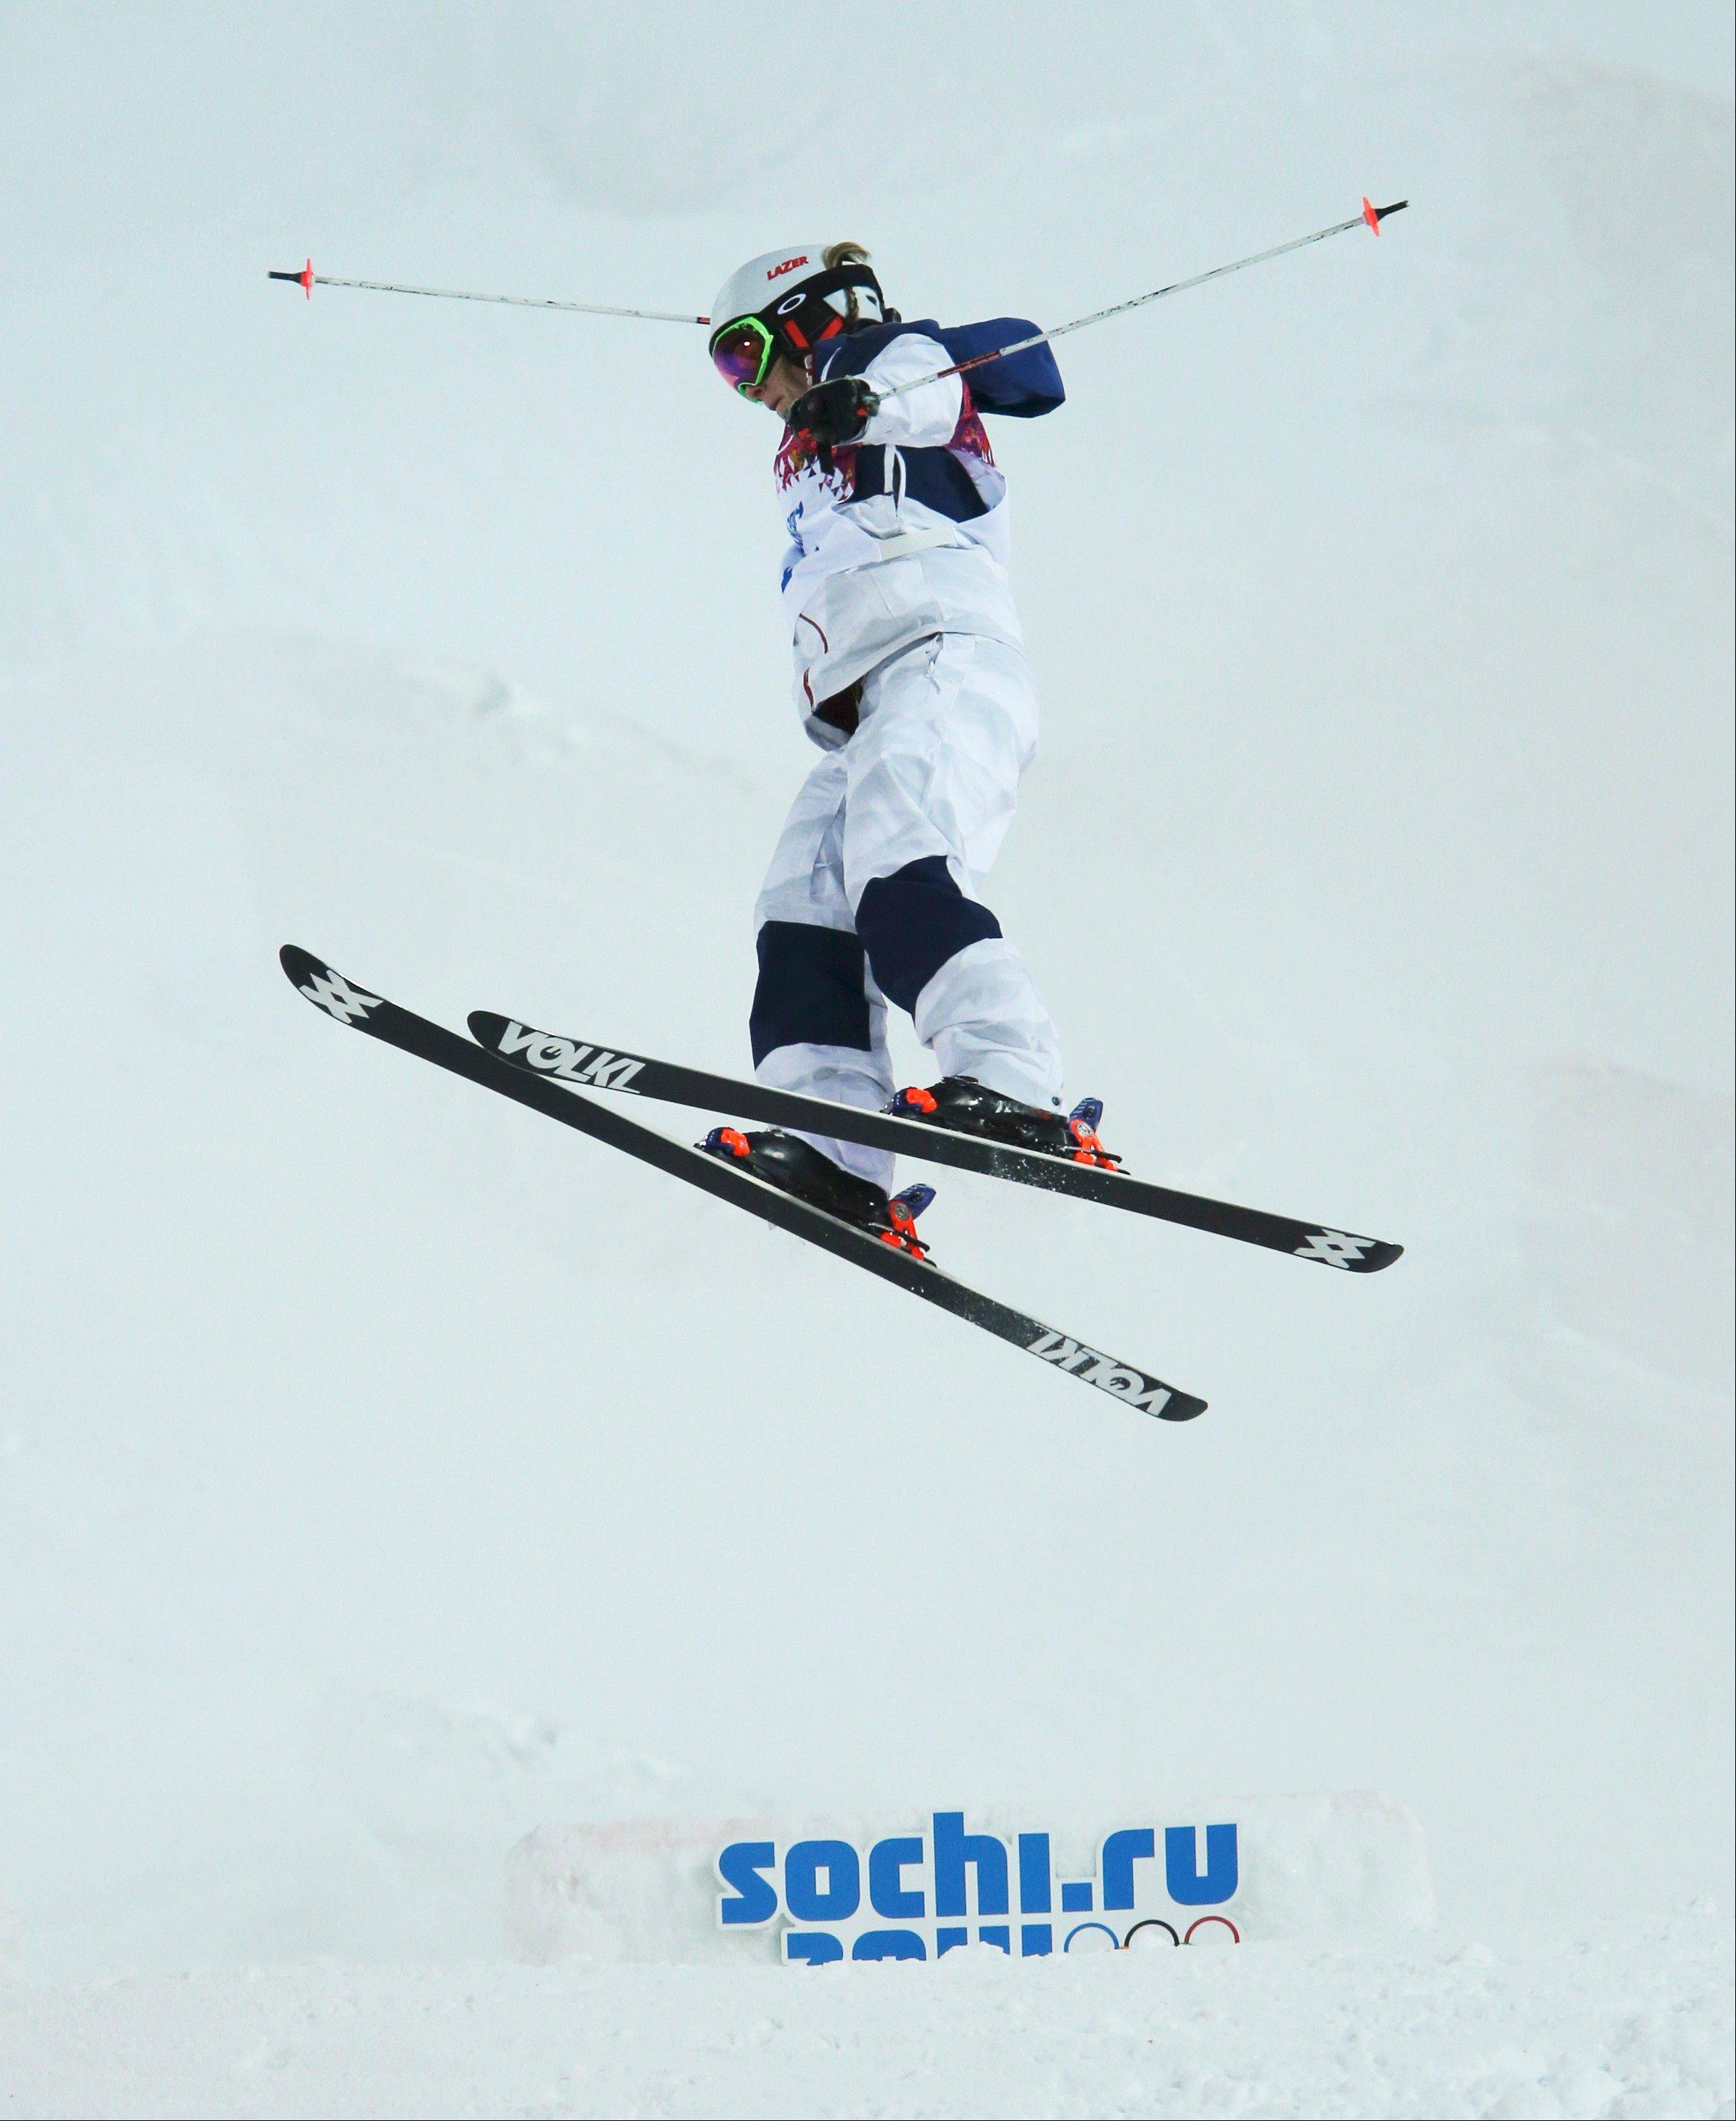 United States� Hannah Kearney jumps during qualifying in the women�s moguls at the Rosa Kutor Exreme Park ahead of the 2014 Winter Olympics, Thursday, Feb. 6, 2014, in Krasnaya Polyana, Russia.